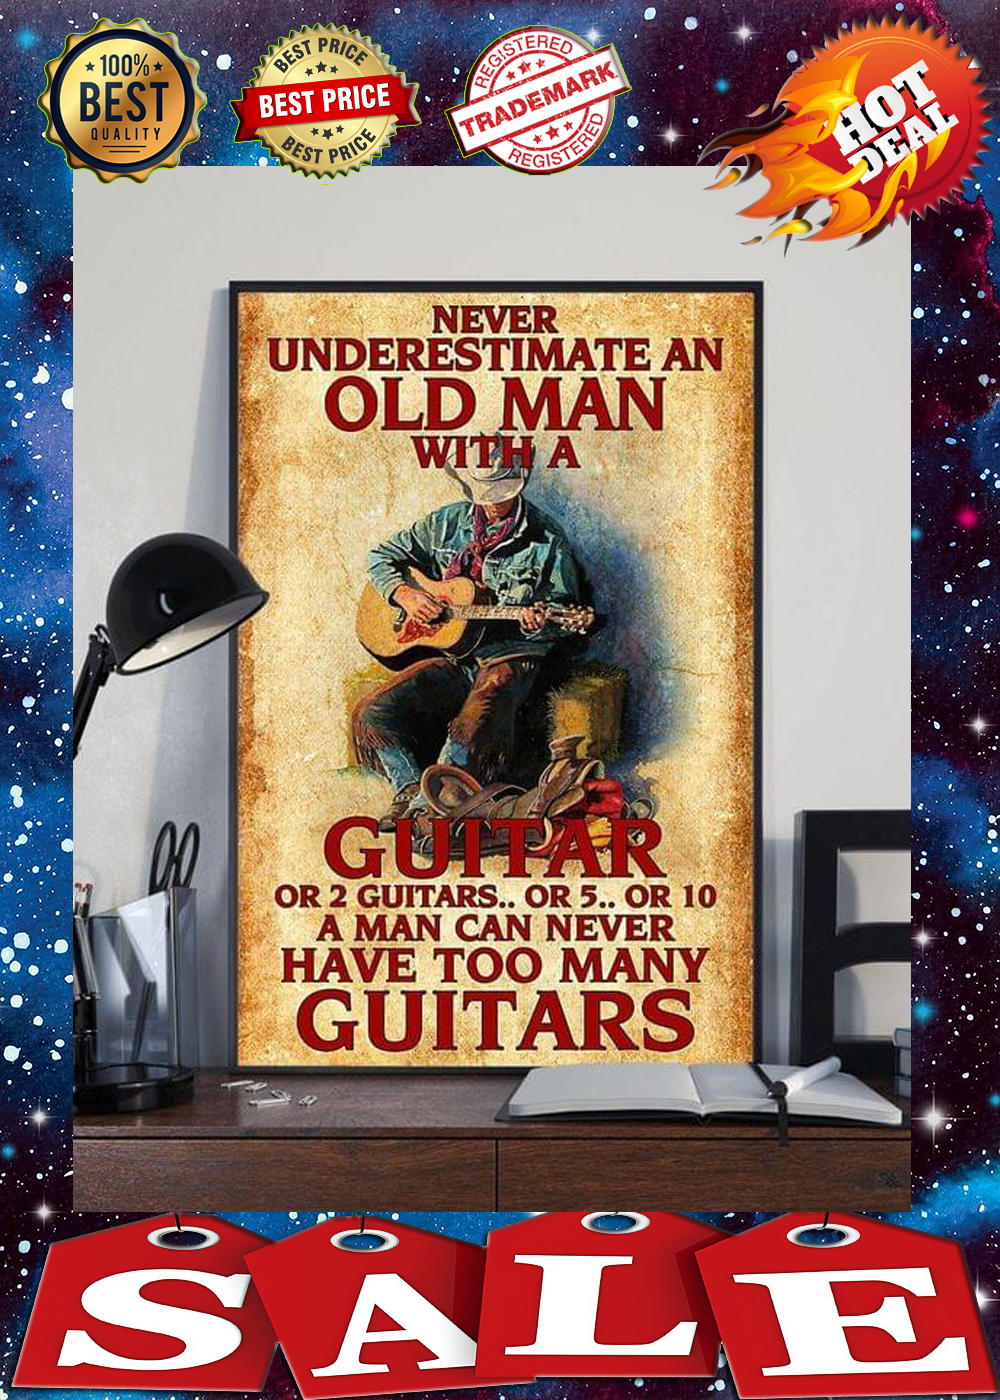 Never underestimate an old man with a guitar or 2 guitars poster 2